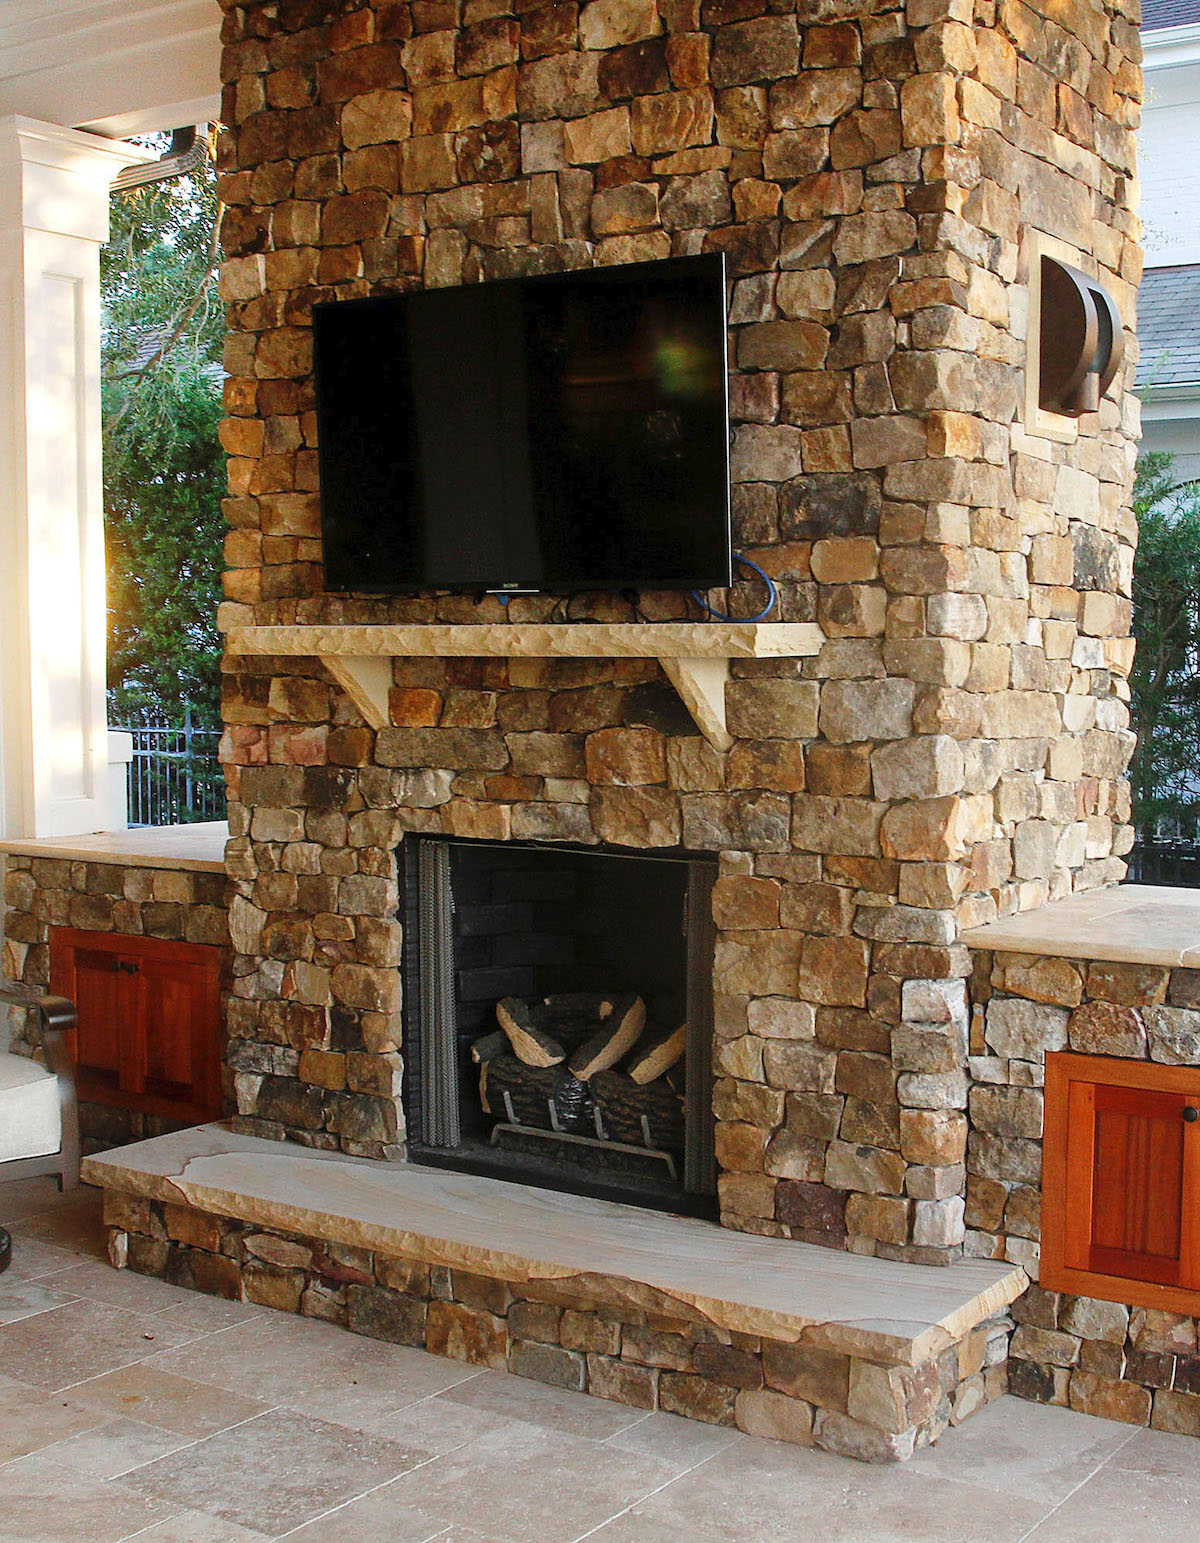 stone fireplace with raised hearth and side cabinets with TV mounted over a stone mantel in a sunroom